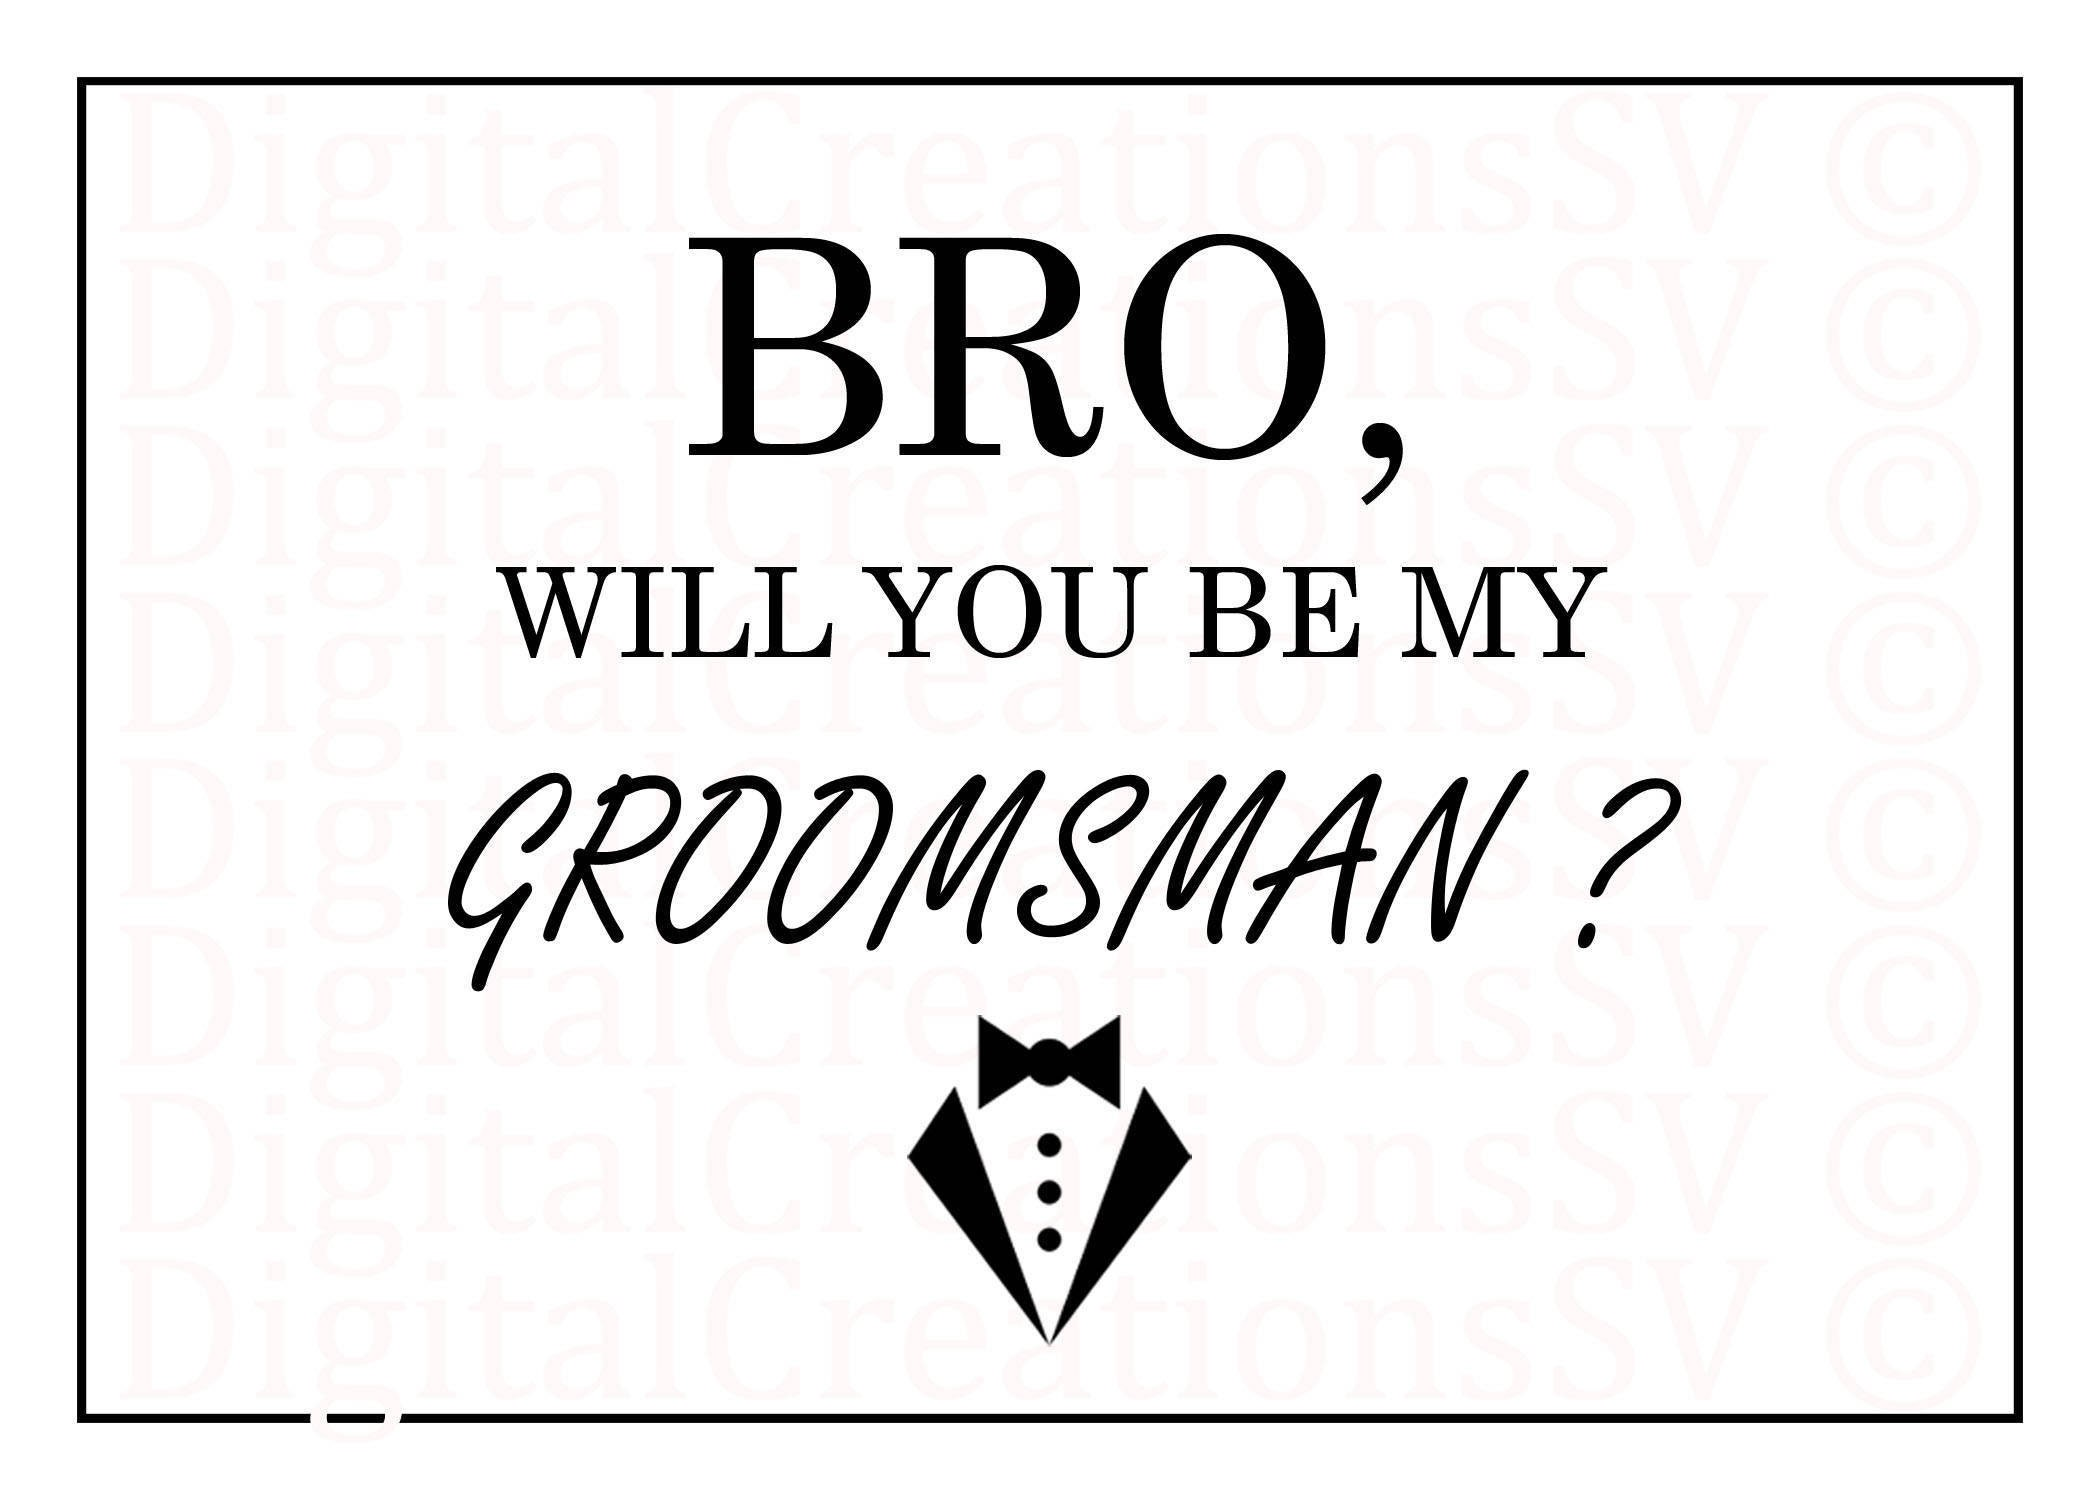 Printable bro will you be my groomsman groomsman printable bro will you be my groomsman groomsman gifts and proposals junglespirit Image collections